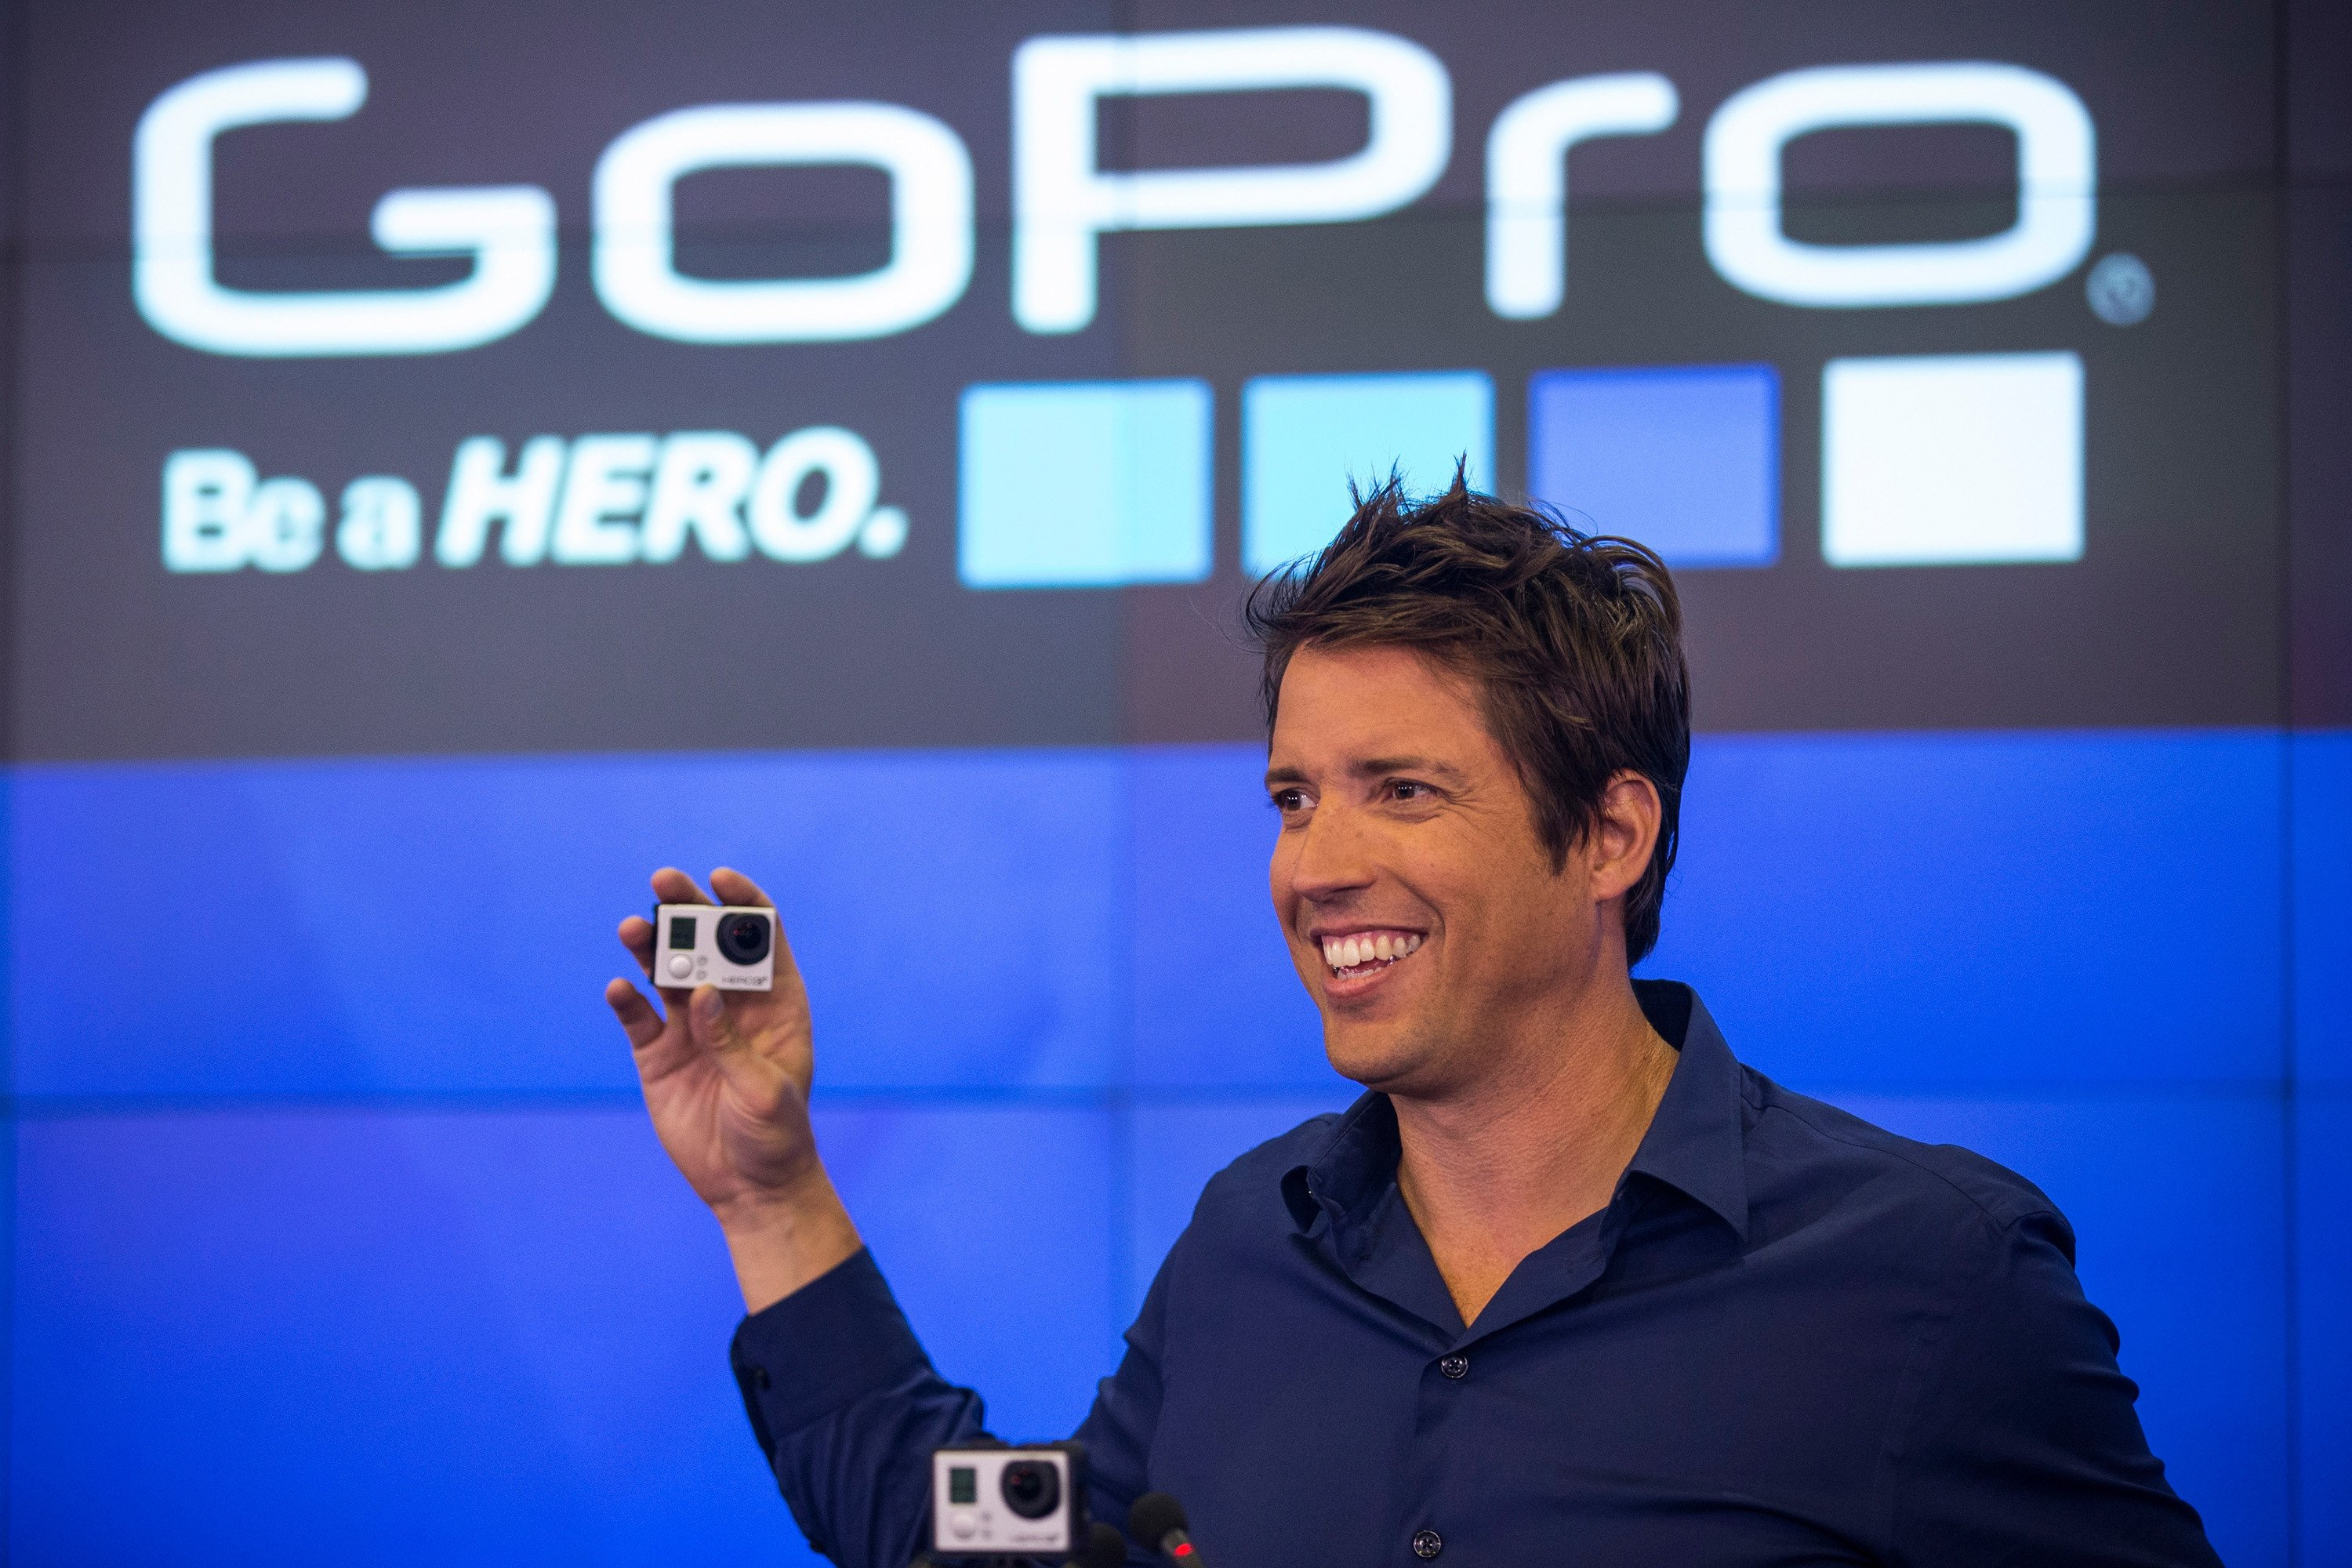 GoPro hires JPMorgan to explore a possible sale